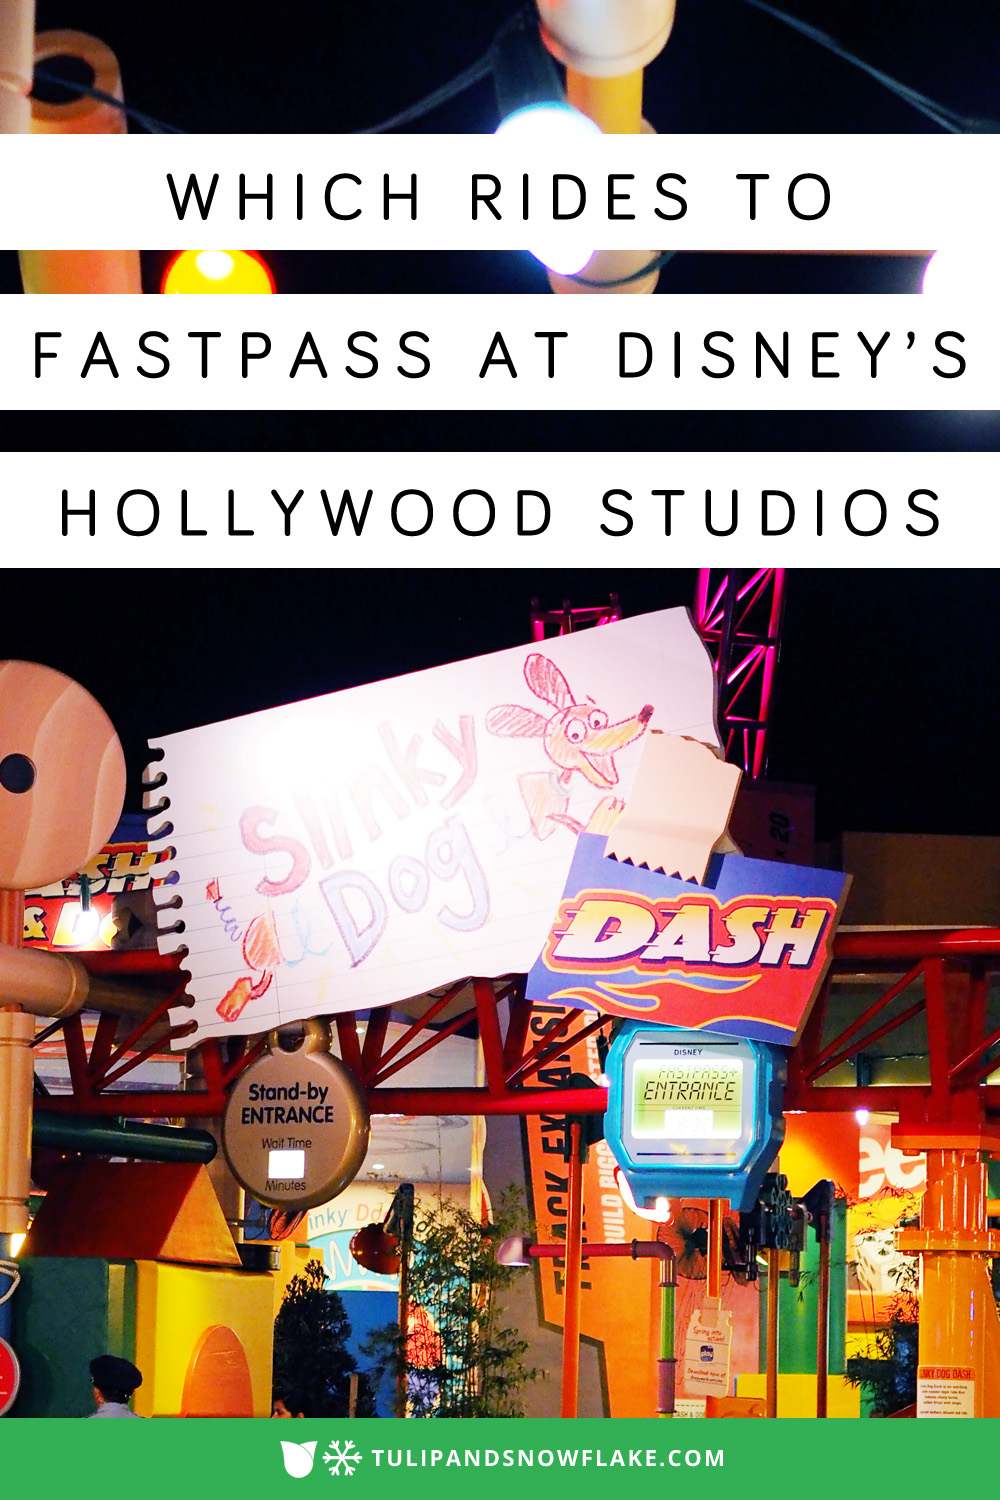 Which rides to FastPass at Disney's Hollywood Studios